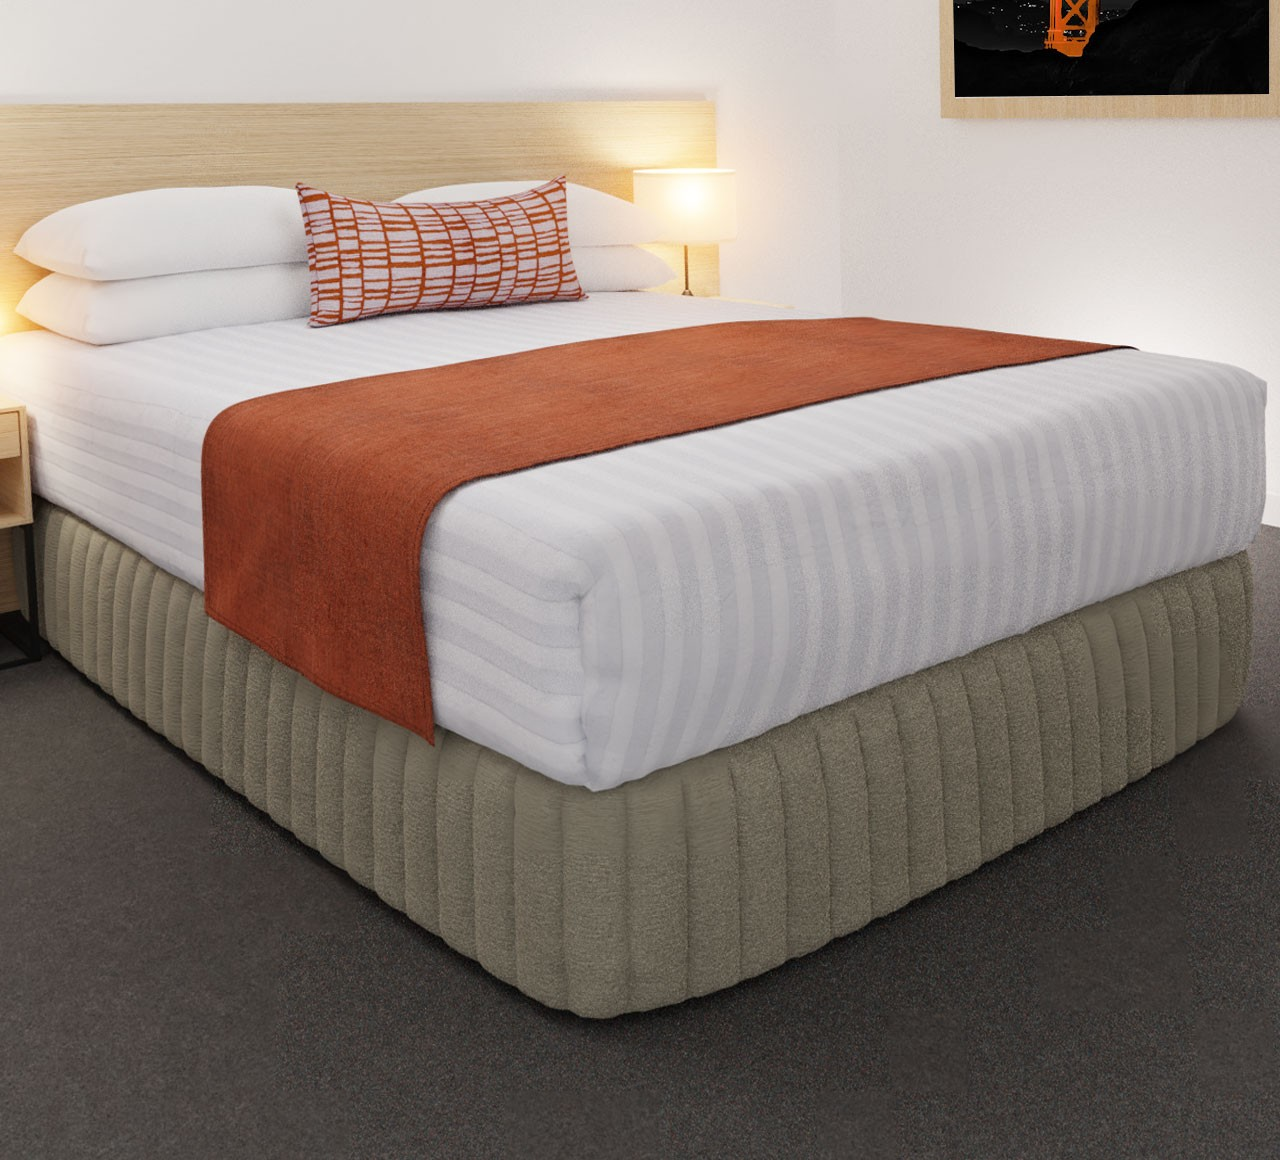 Clipper Coral Luxury STD Runner, with Vue Concept Coral Belair Cushion